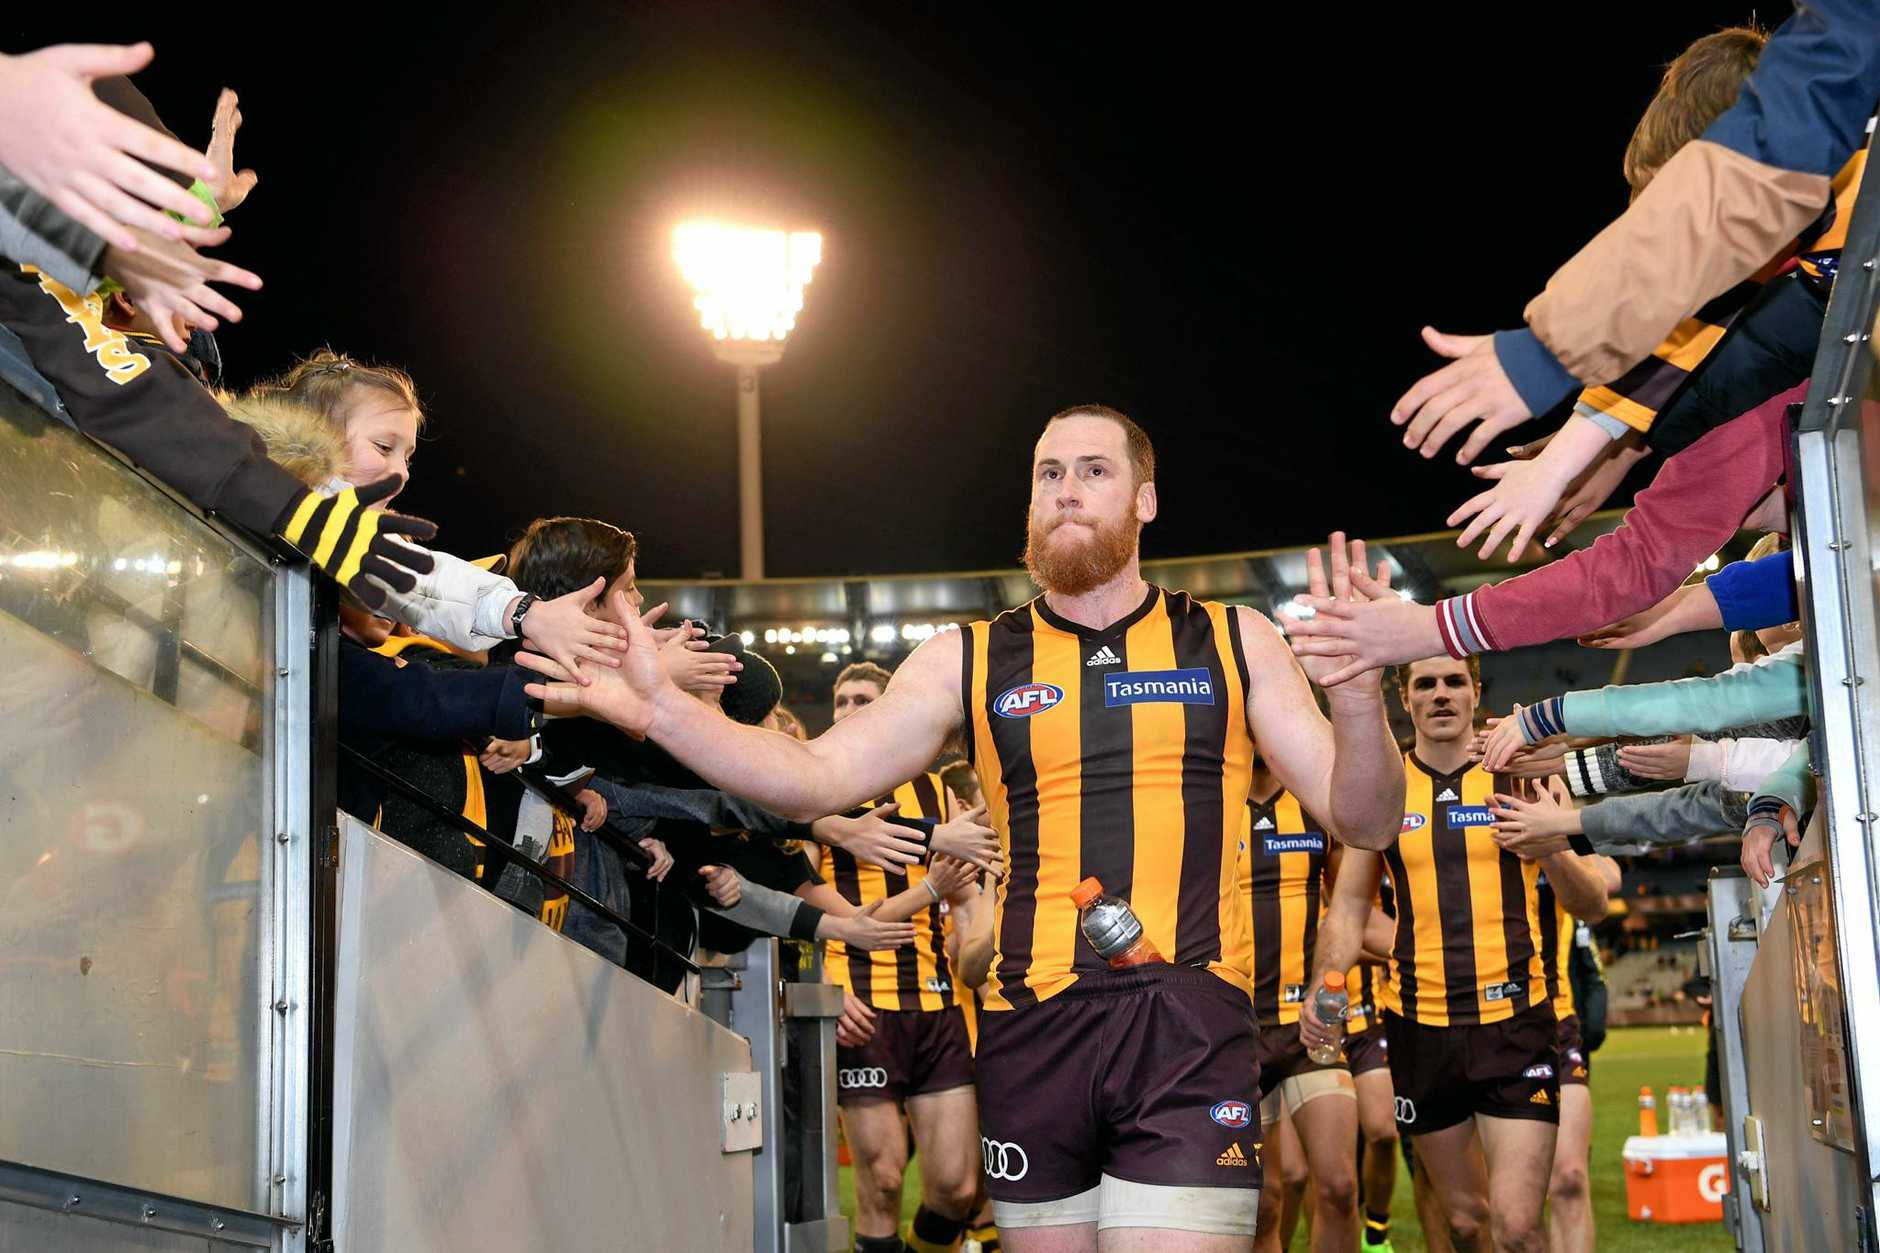 Jarryd Roughead of the Hawks celebrates with fans after the side's win, during the round 15 AFL match between the Hawthorn Hawks and Collingwood Magpies, at the MCG in Melbourne, Sunday, July 2, 2017. (AAP Image/Joe Castro) NO ARCHIVING